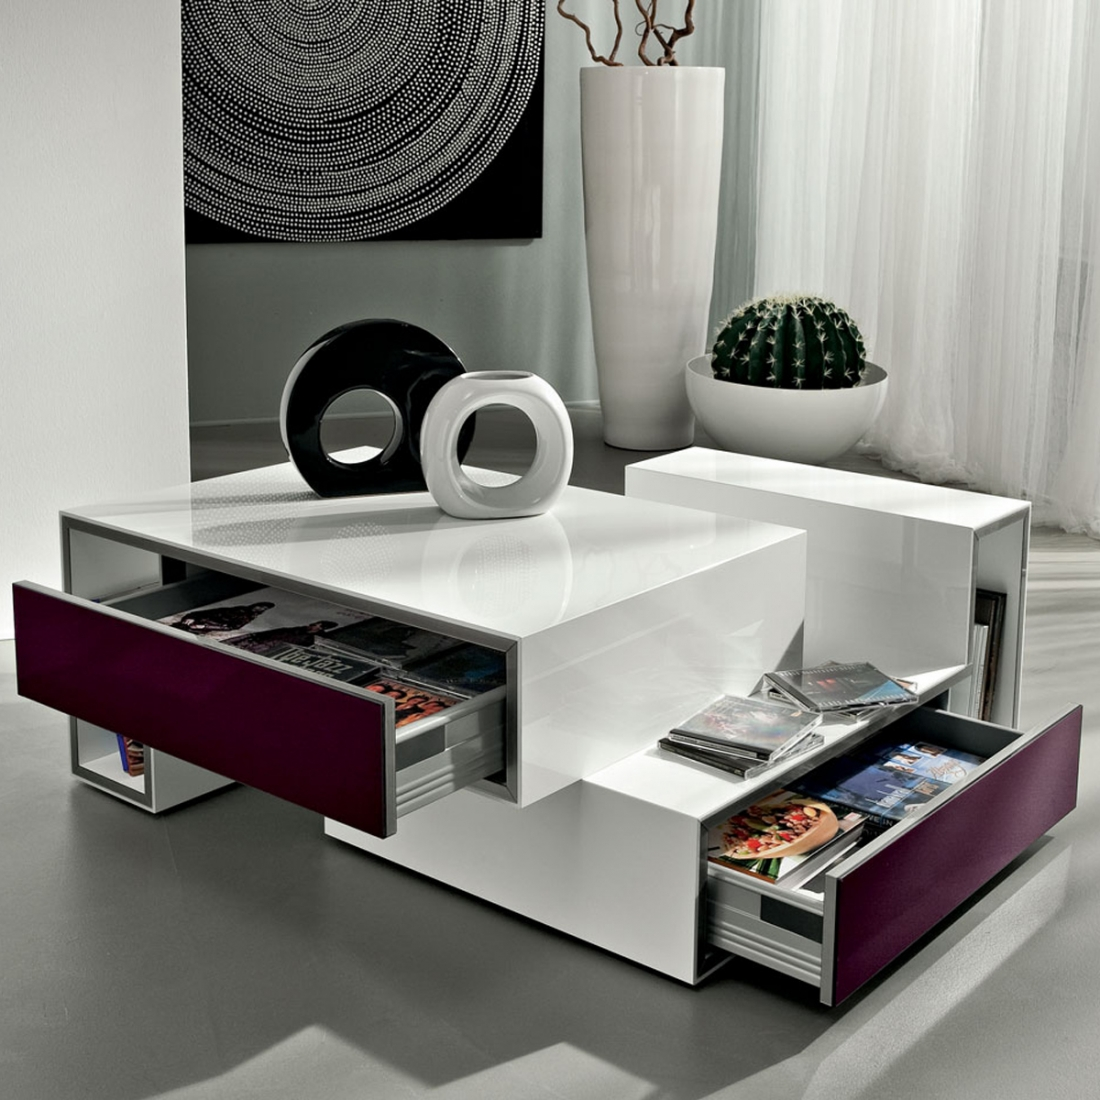 table basse design avec tiroir marika. Black Bedroom Furniture Sets. Home Design Ideas